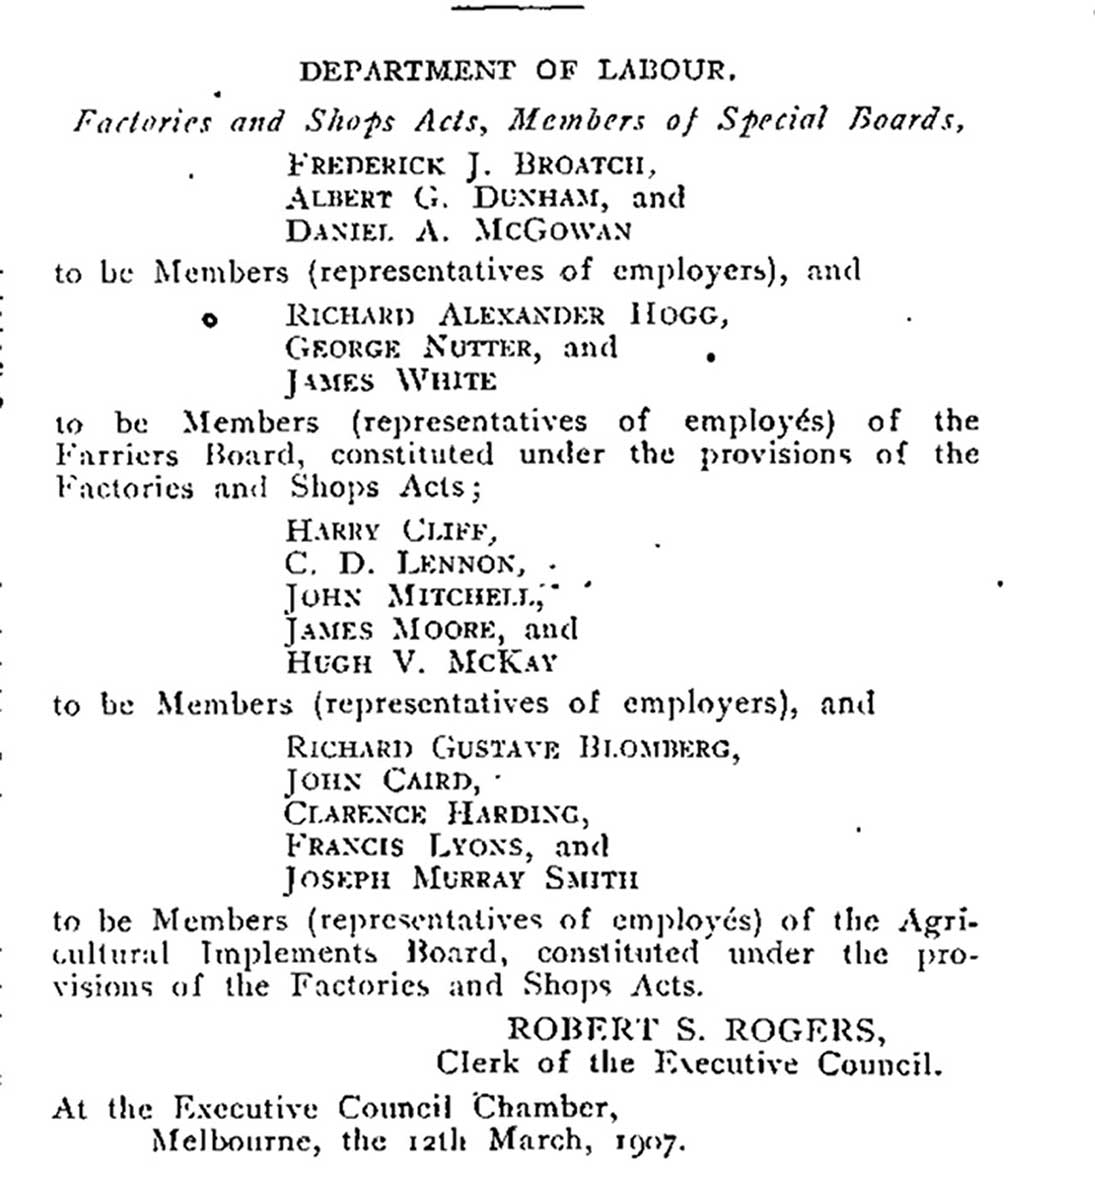 List of members of the Agricultural Implements Wages Board, 1907. - click to view larger image